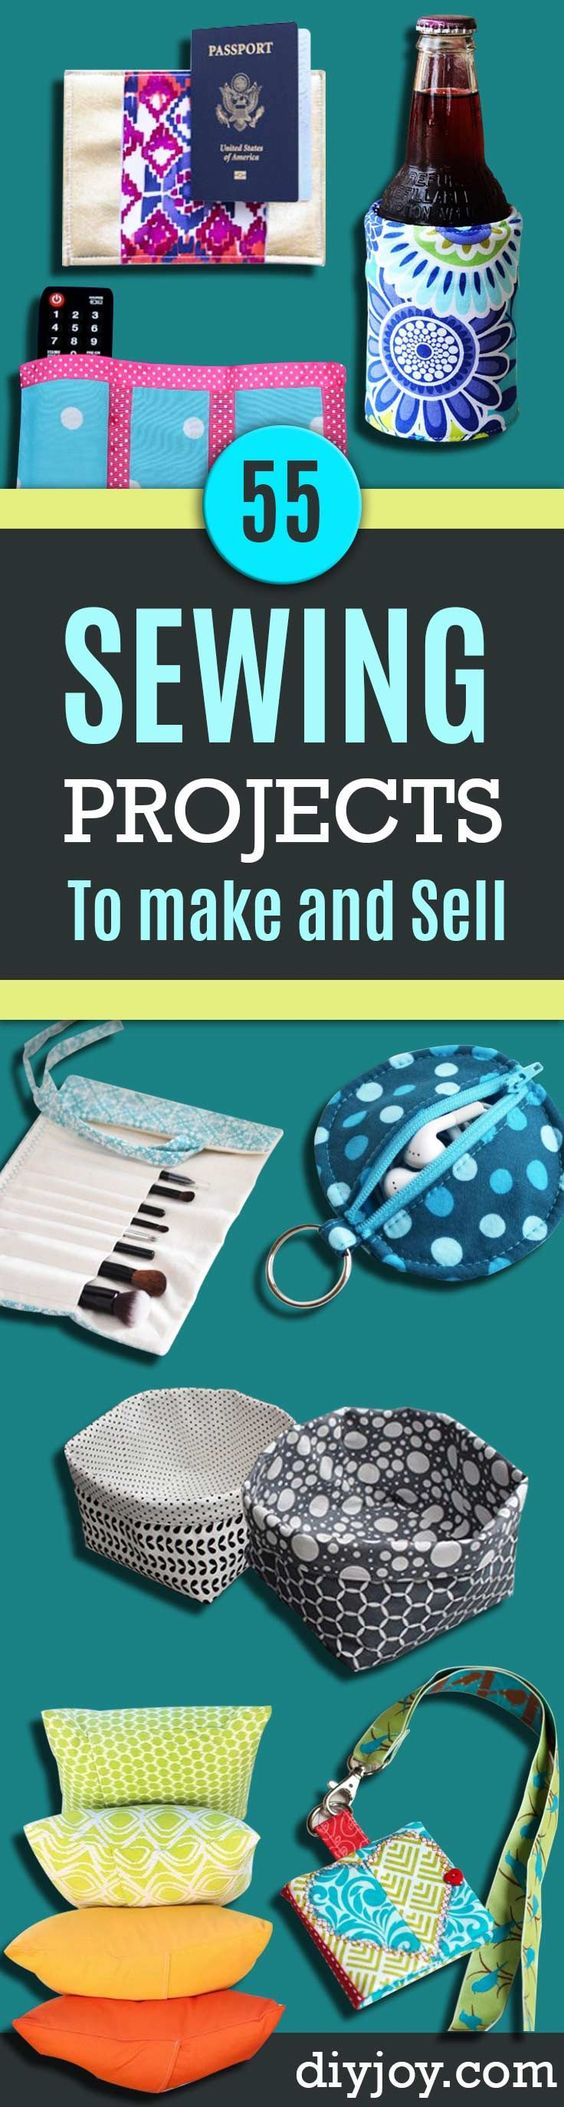 55 Sewing Projects to Make And Sell Patterns, Fabrics